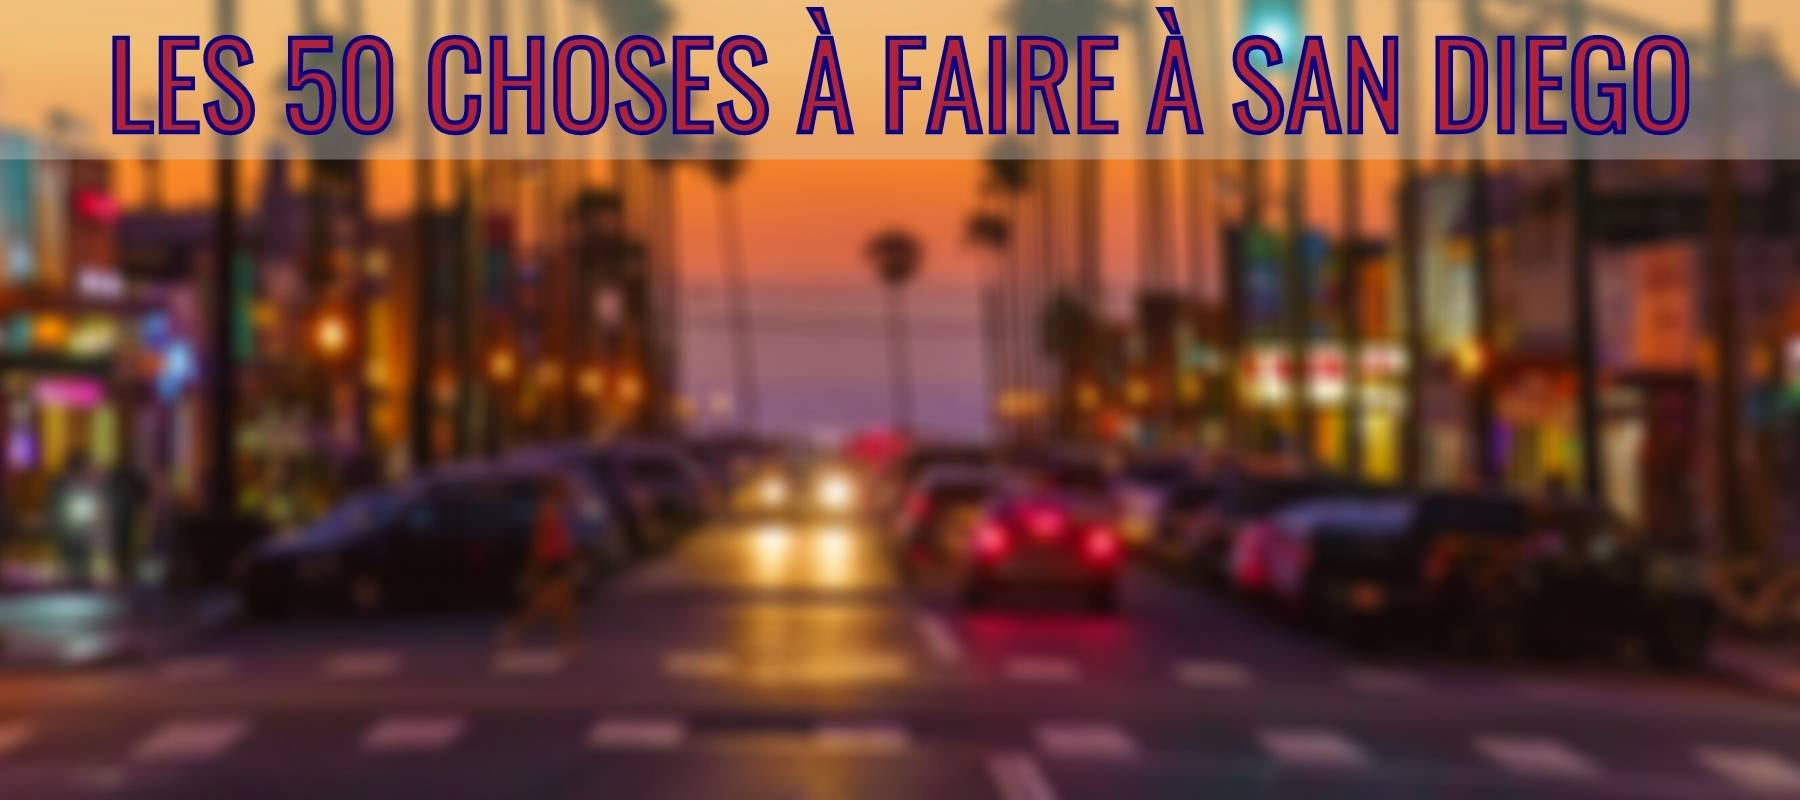 Les 50 Choses à faire à San Diego